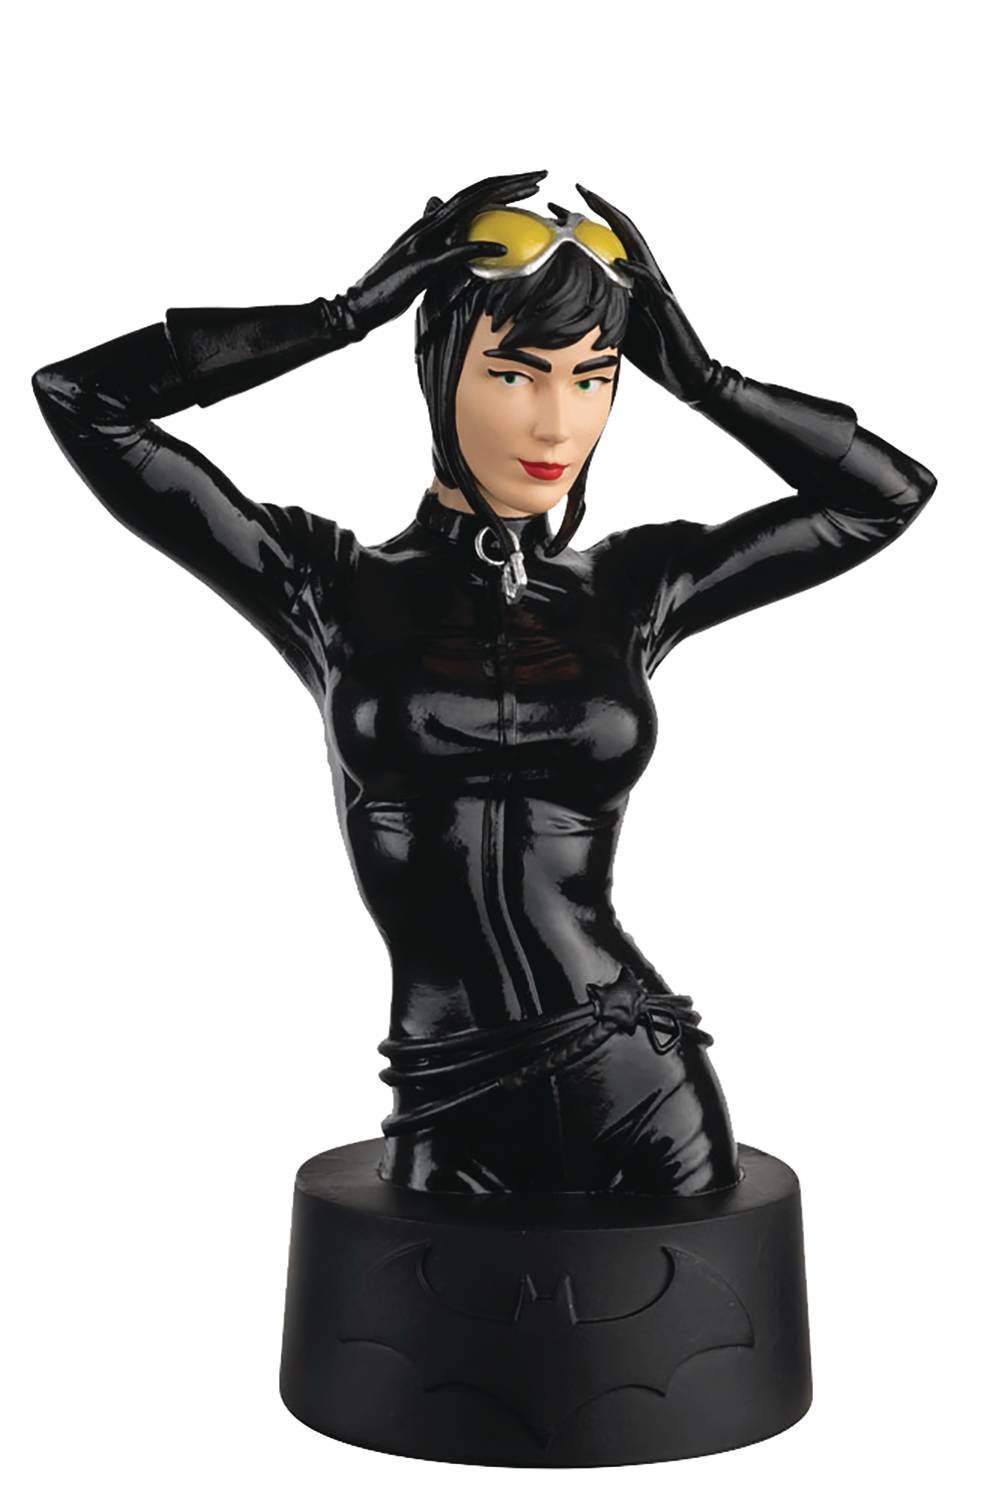 Catwoman Collector/'s Bust Diamond Comic Distributors OCT172395 Catwoman Collectors Bust Eaglemoss DC Batman Universe Collector/'s Busts #5 Eaglemoss DC Batman Universe Collectors Busts #5